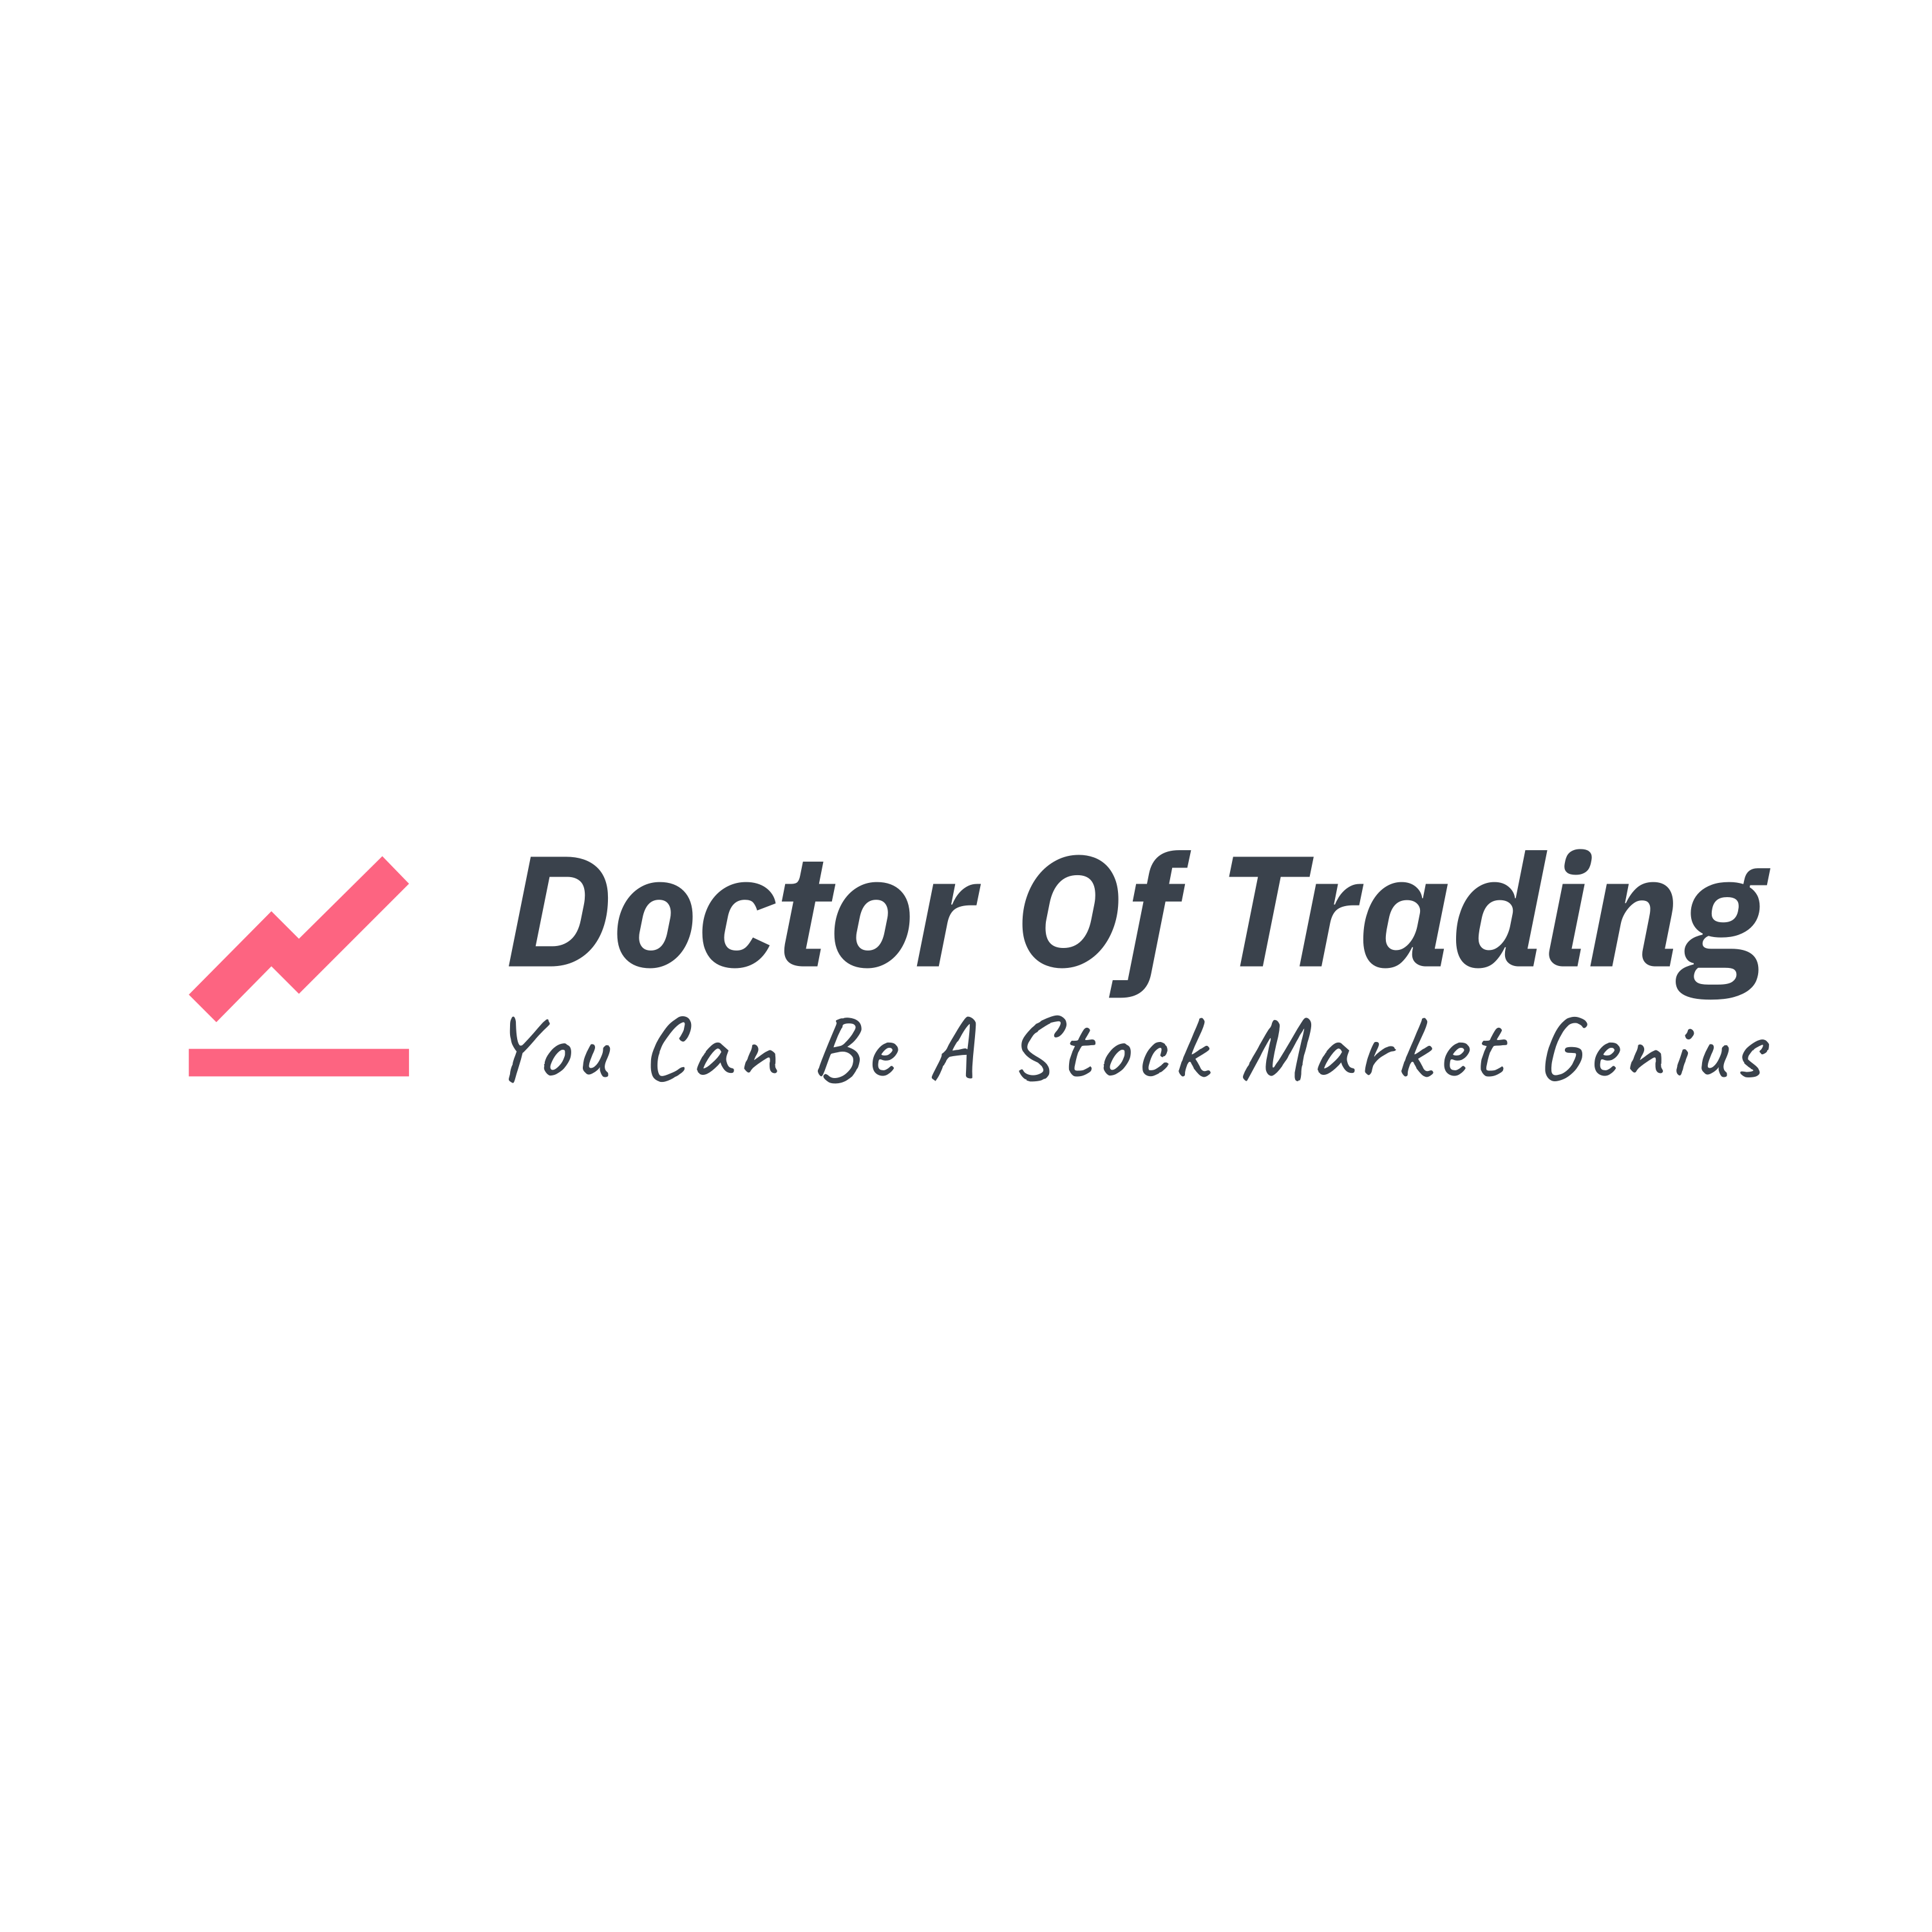 Doctor Of Trading